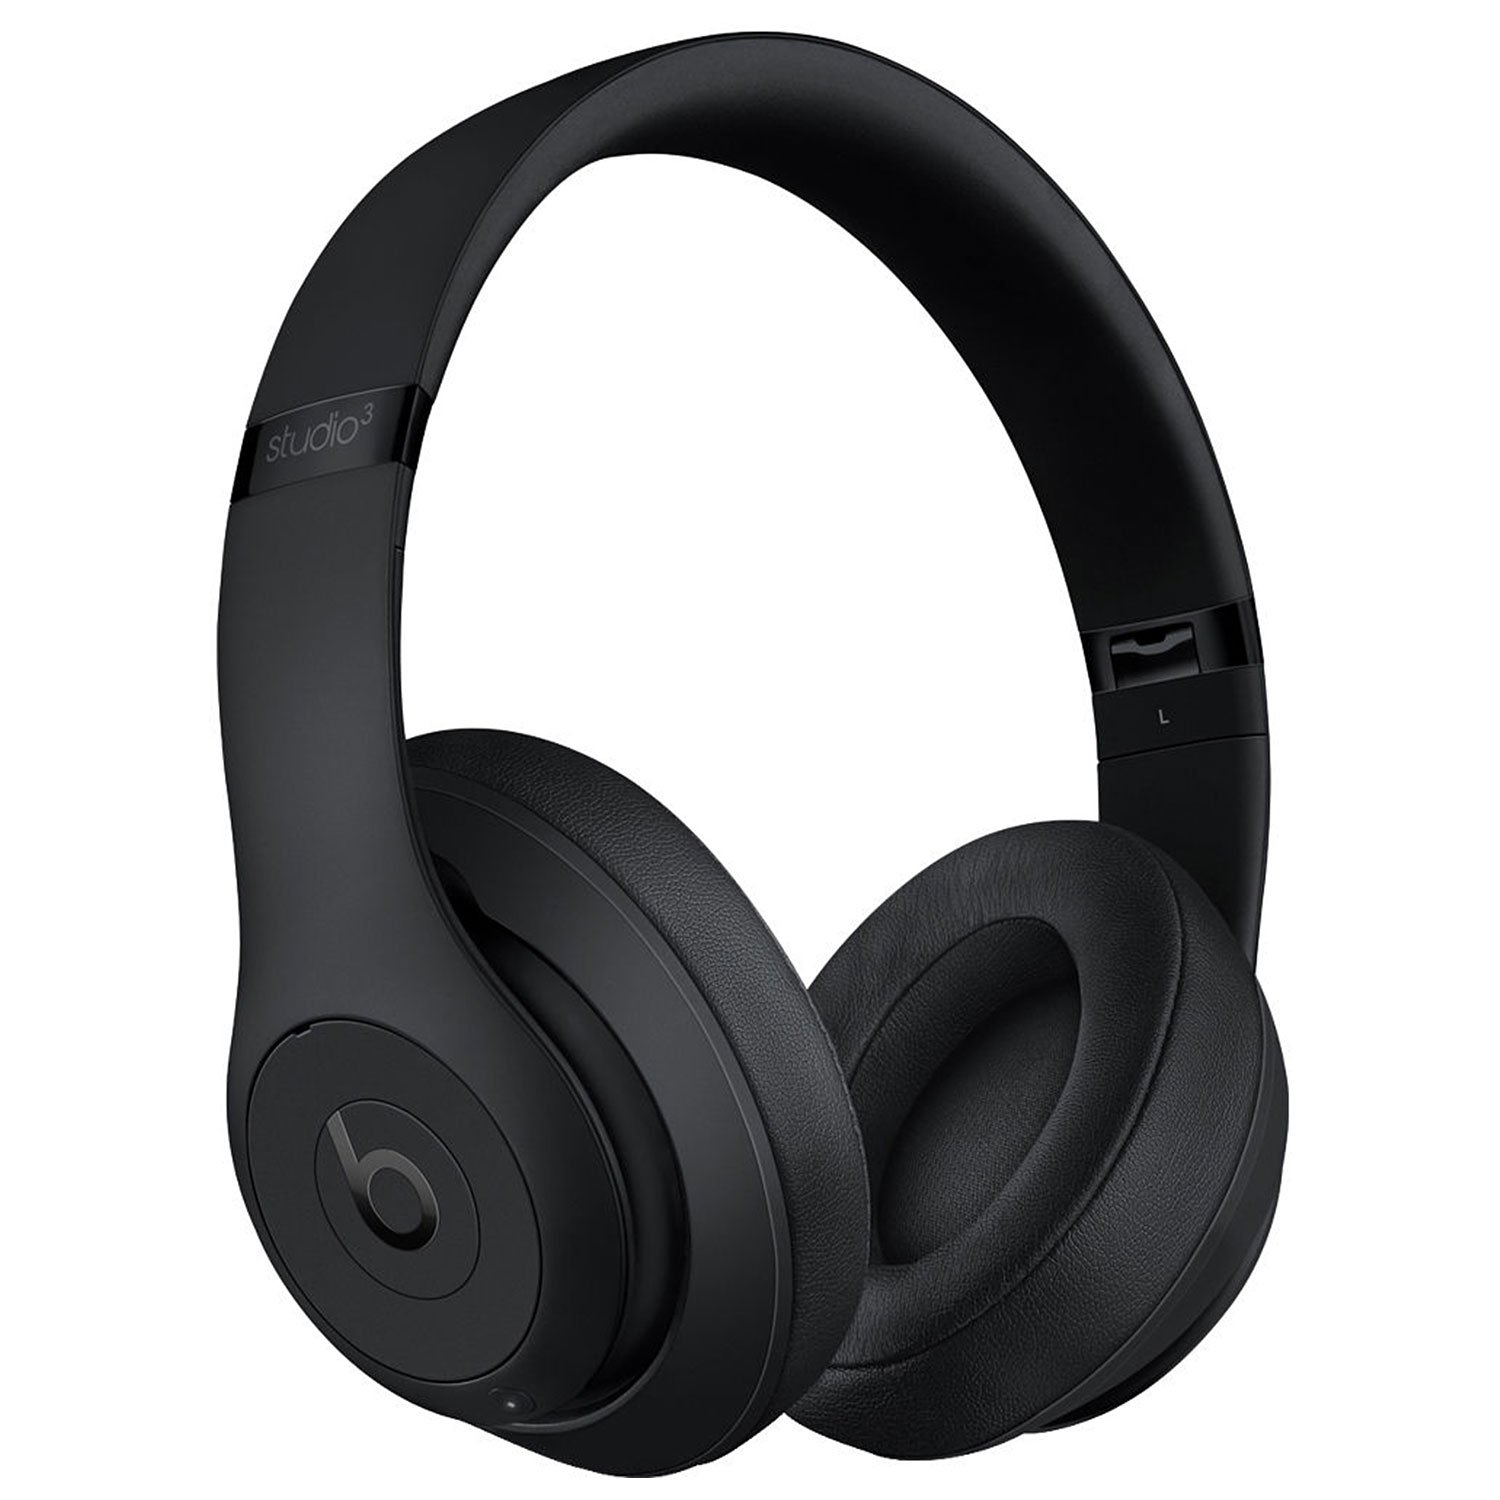 Beats S.t.u.d.io.3 Wireless Bluetooth Built In Mic Over Ear Headphones with Carrying case (Matte Black) by beat_by_dre